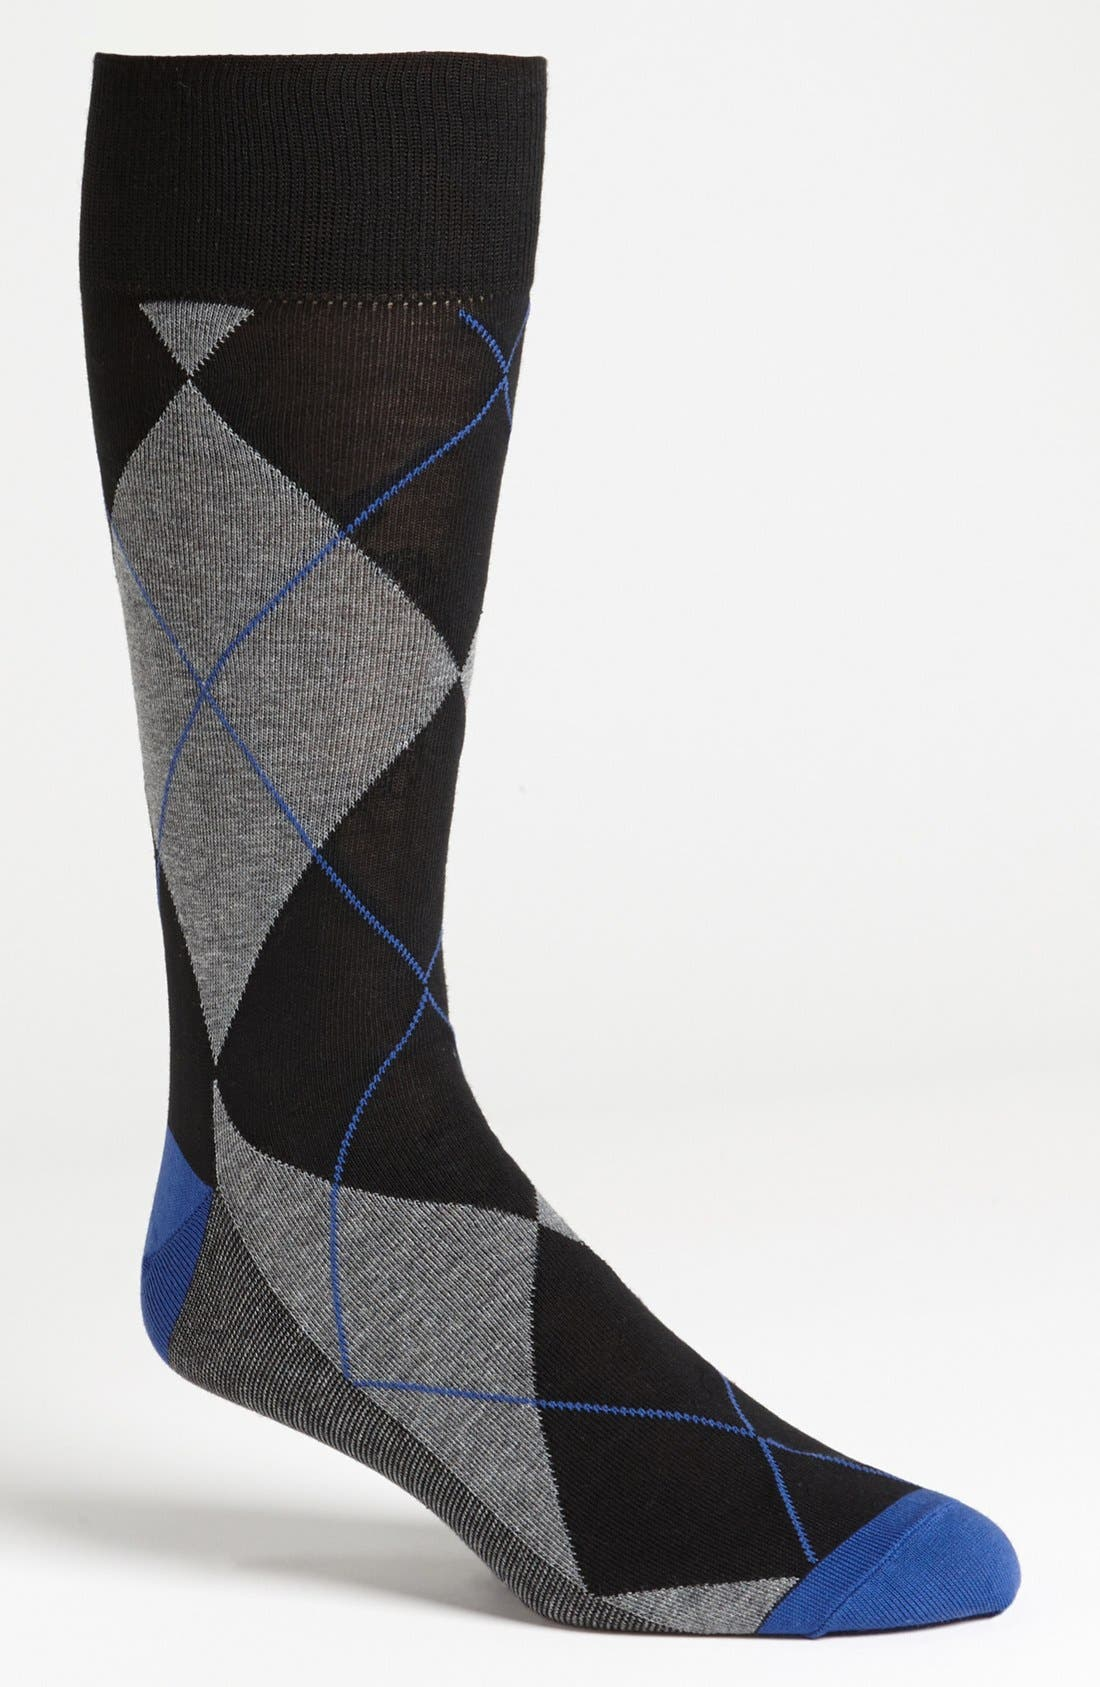 Alternate Image 1 Selected - Cole Haan Crew Socks (3 for $27)